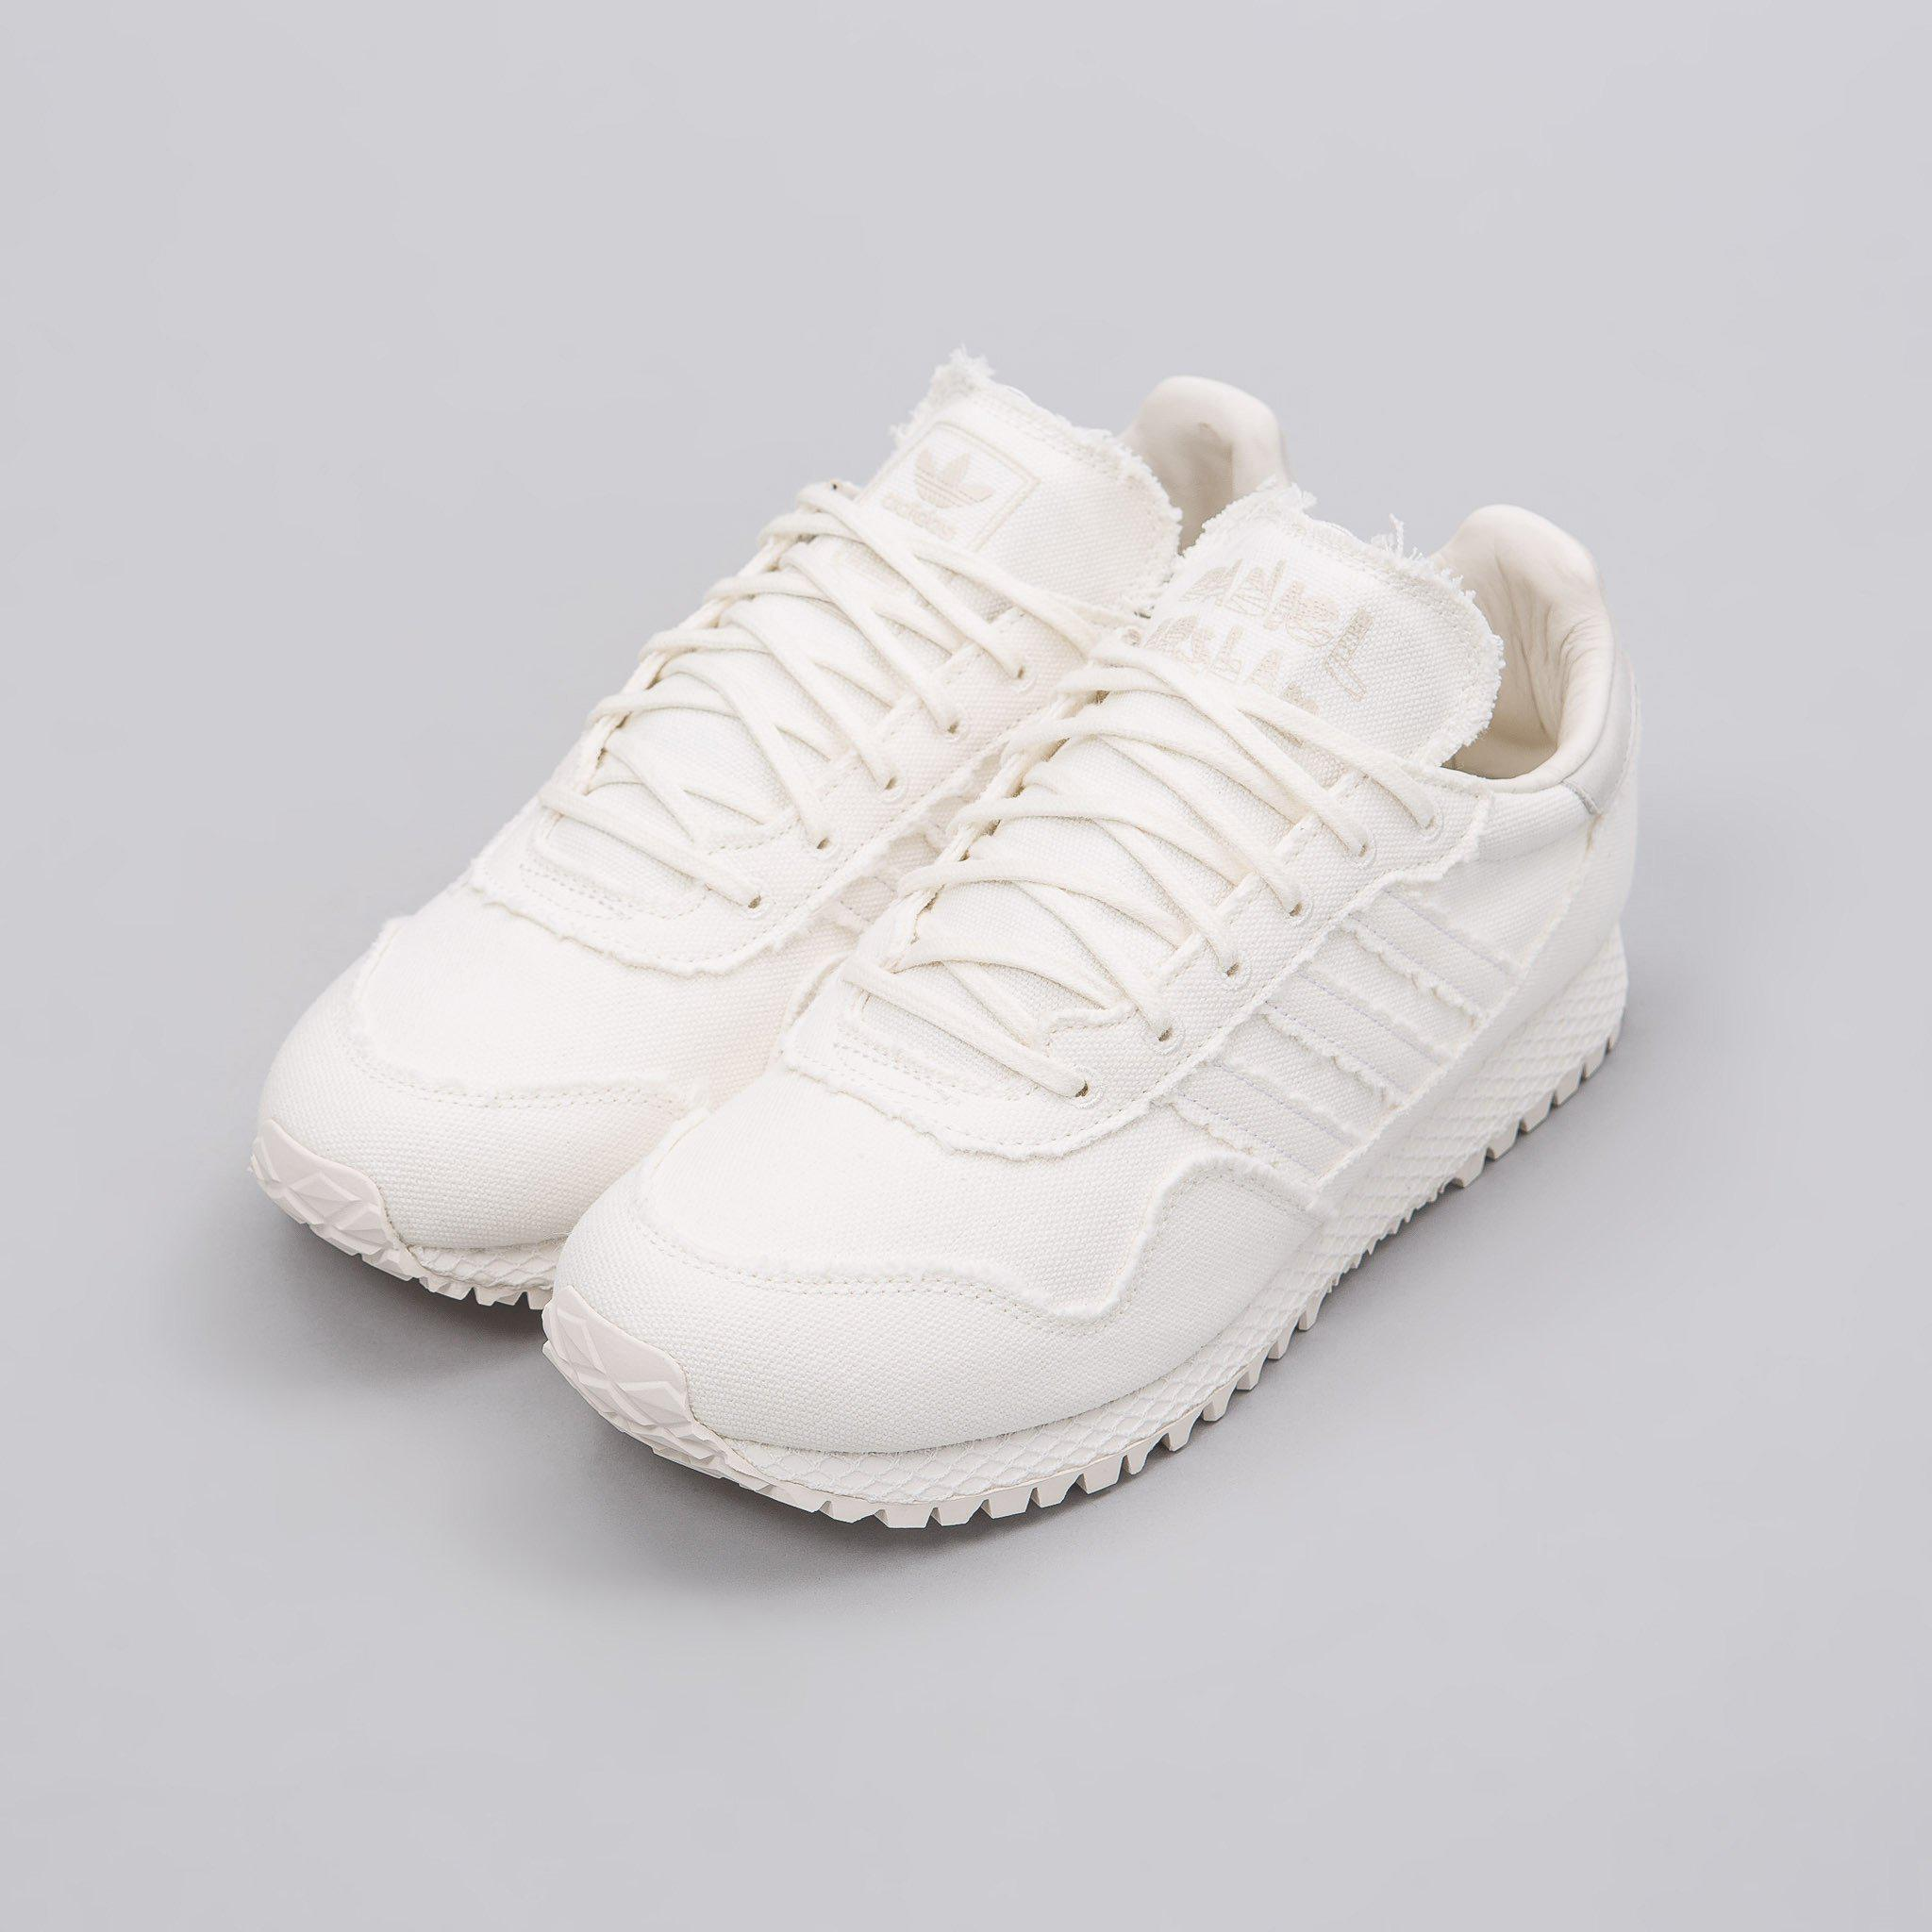 detailed look ce83d e7432 adidas Originals X Daniel Arsham New York Past In Core White in ...